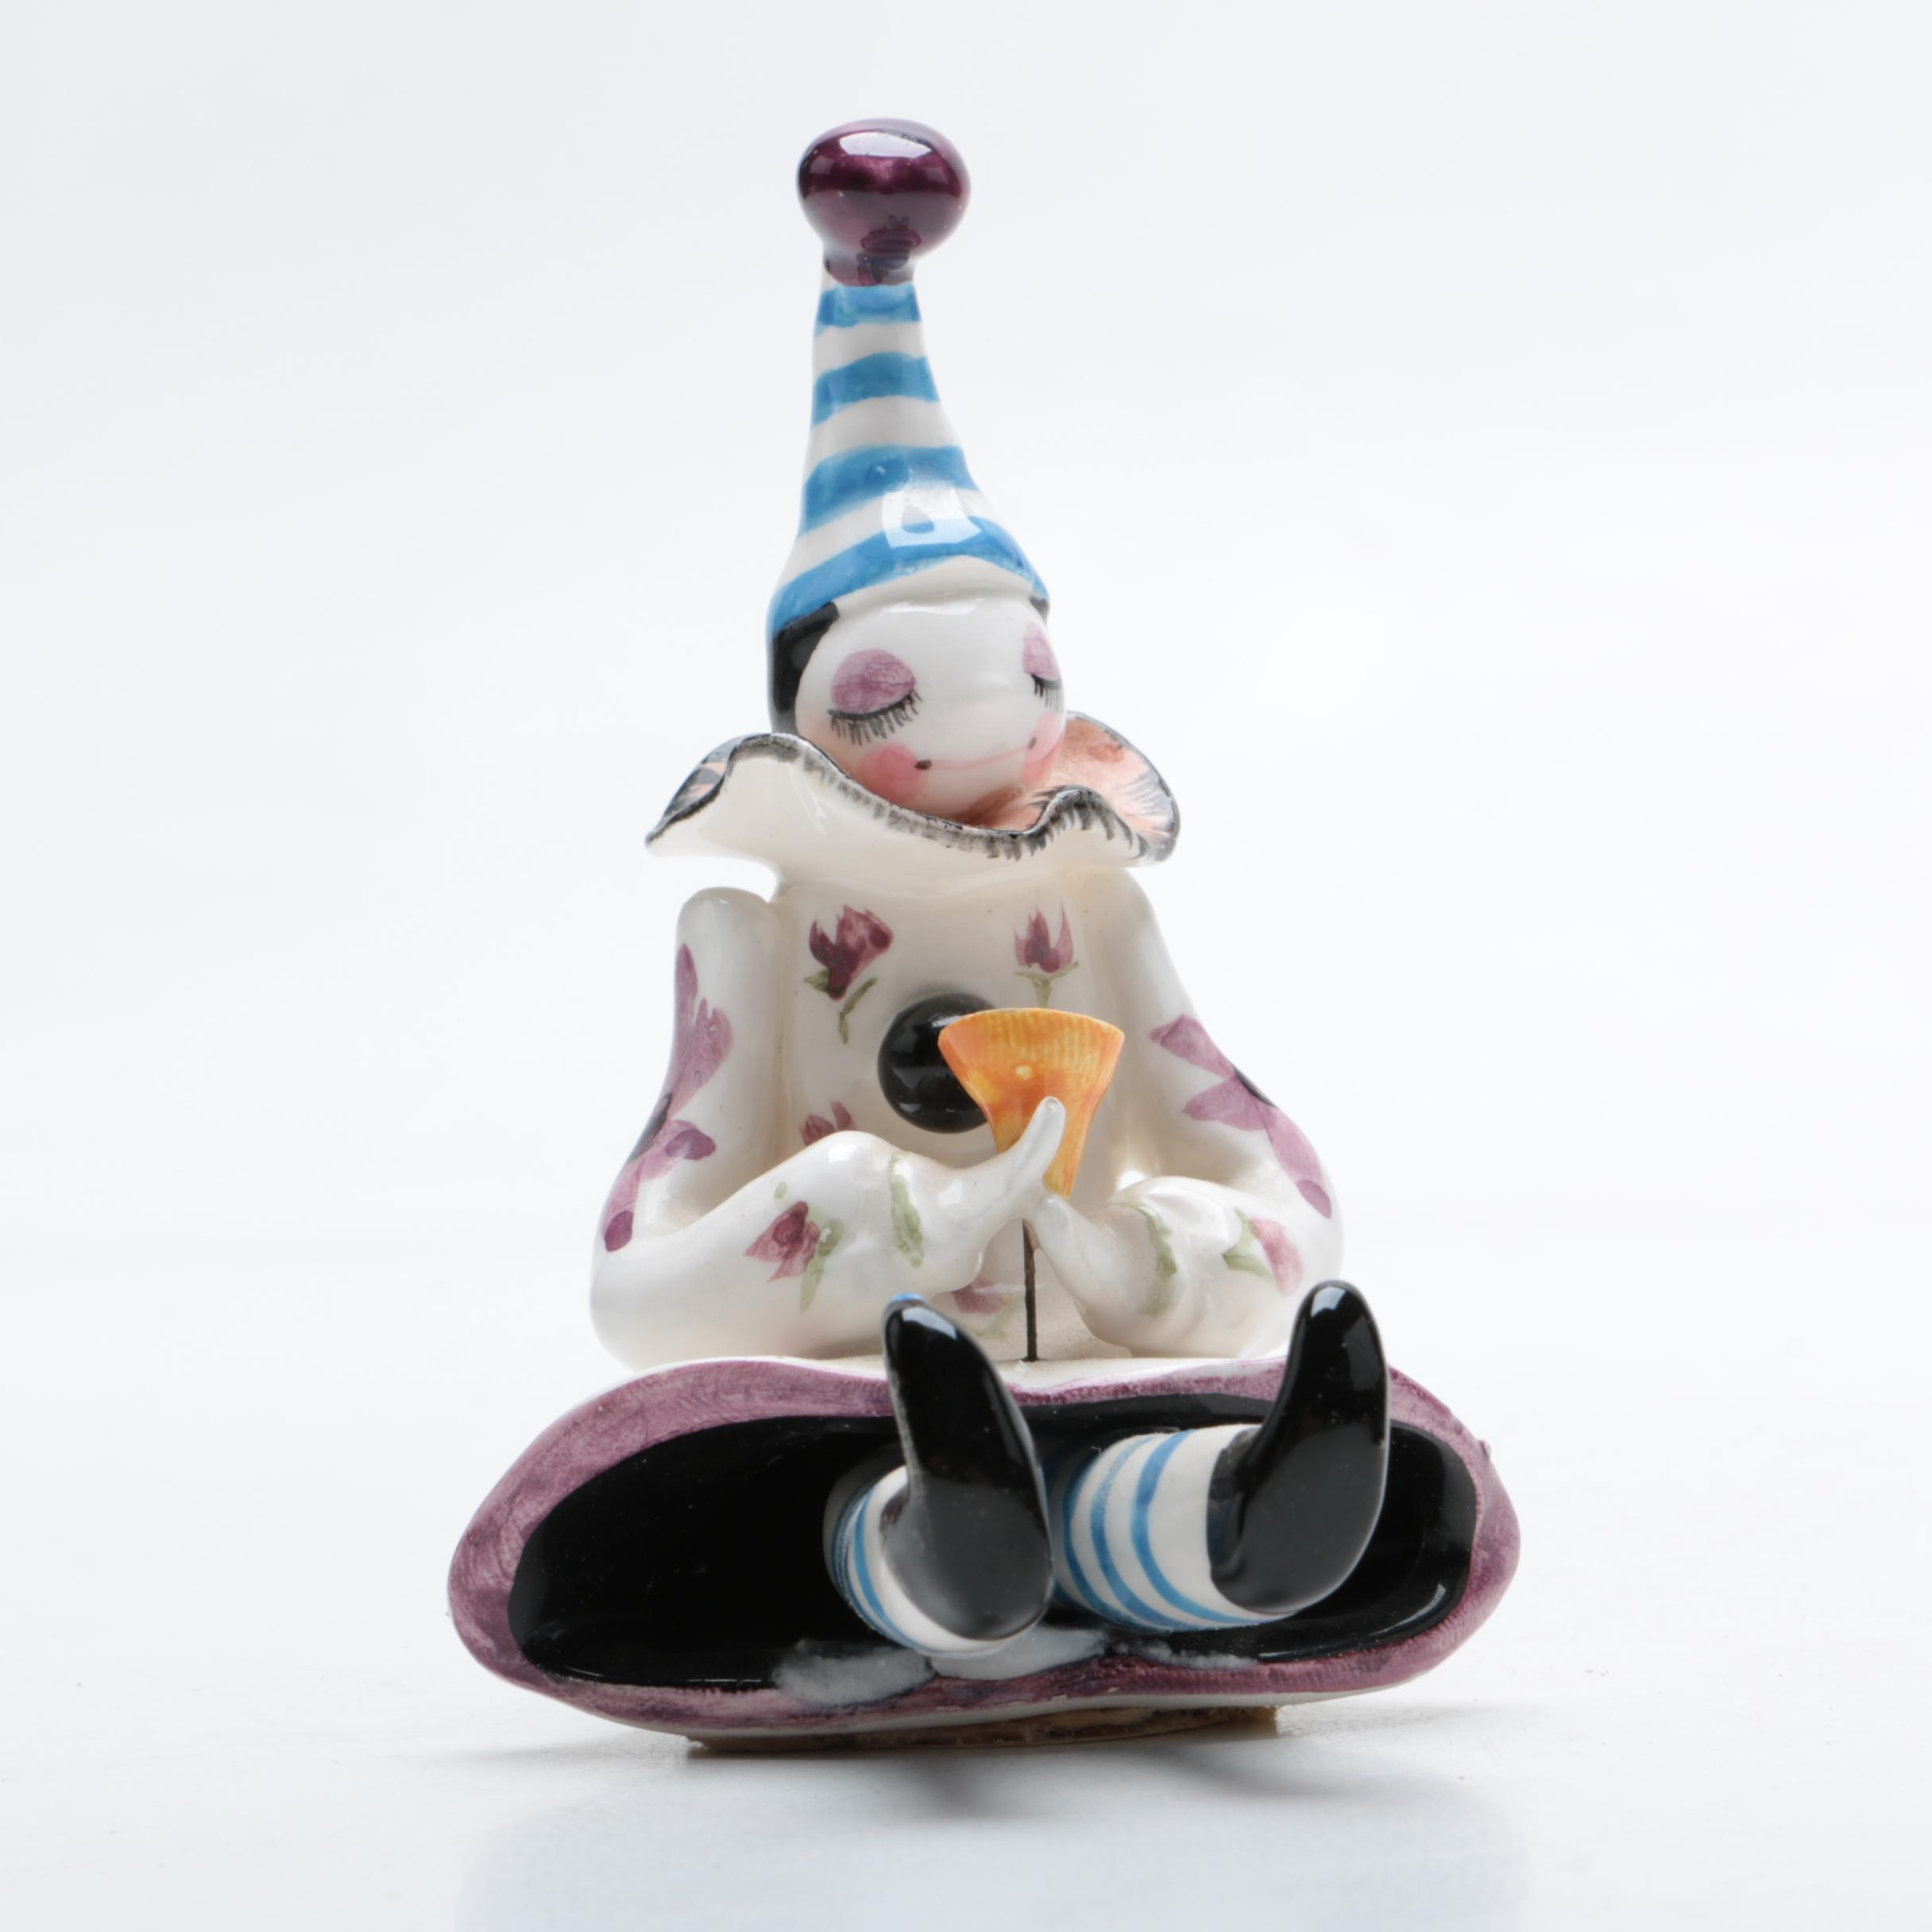 Handcrafted Earthenware Clown Figurine by Schmid